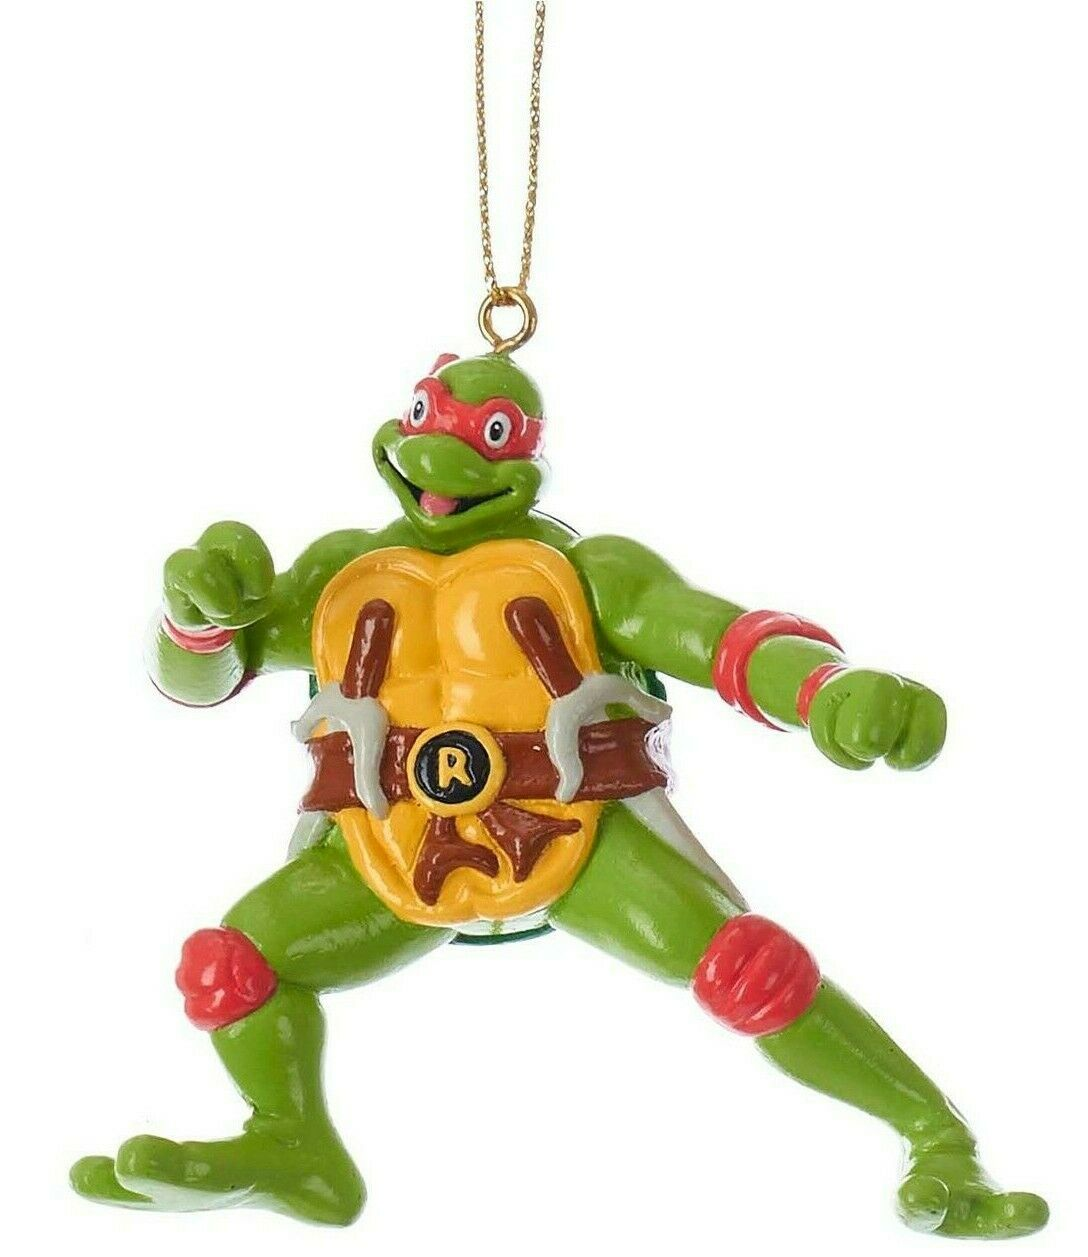 Kurt S. Adler Raphael Teenage Mutant Ninja Turtles Christmas Tree Ornament NWT